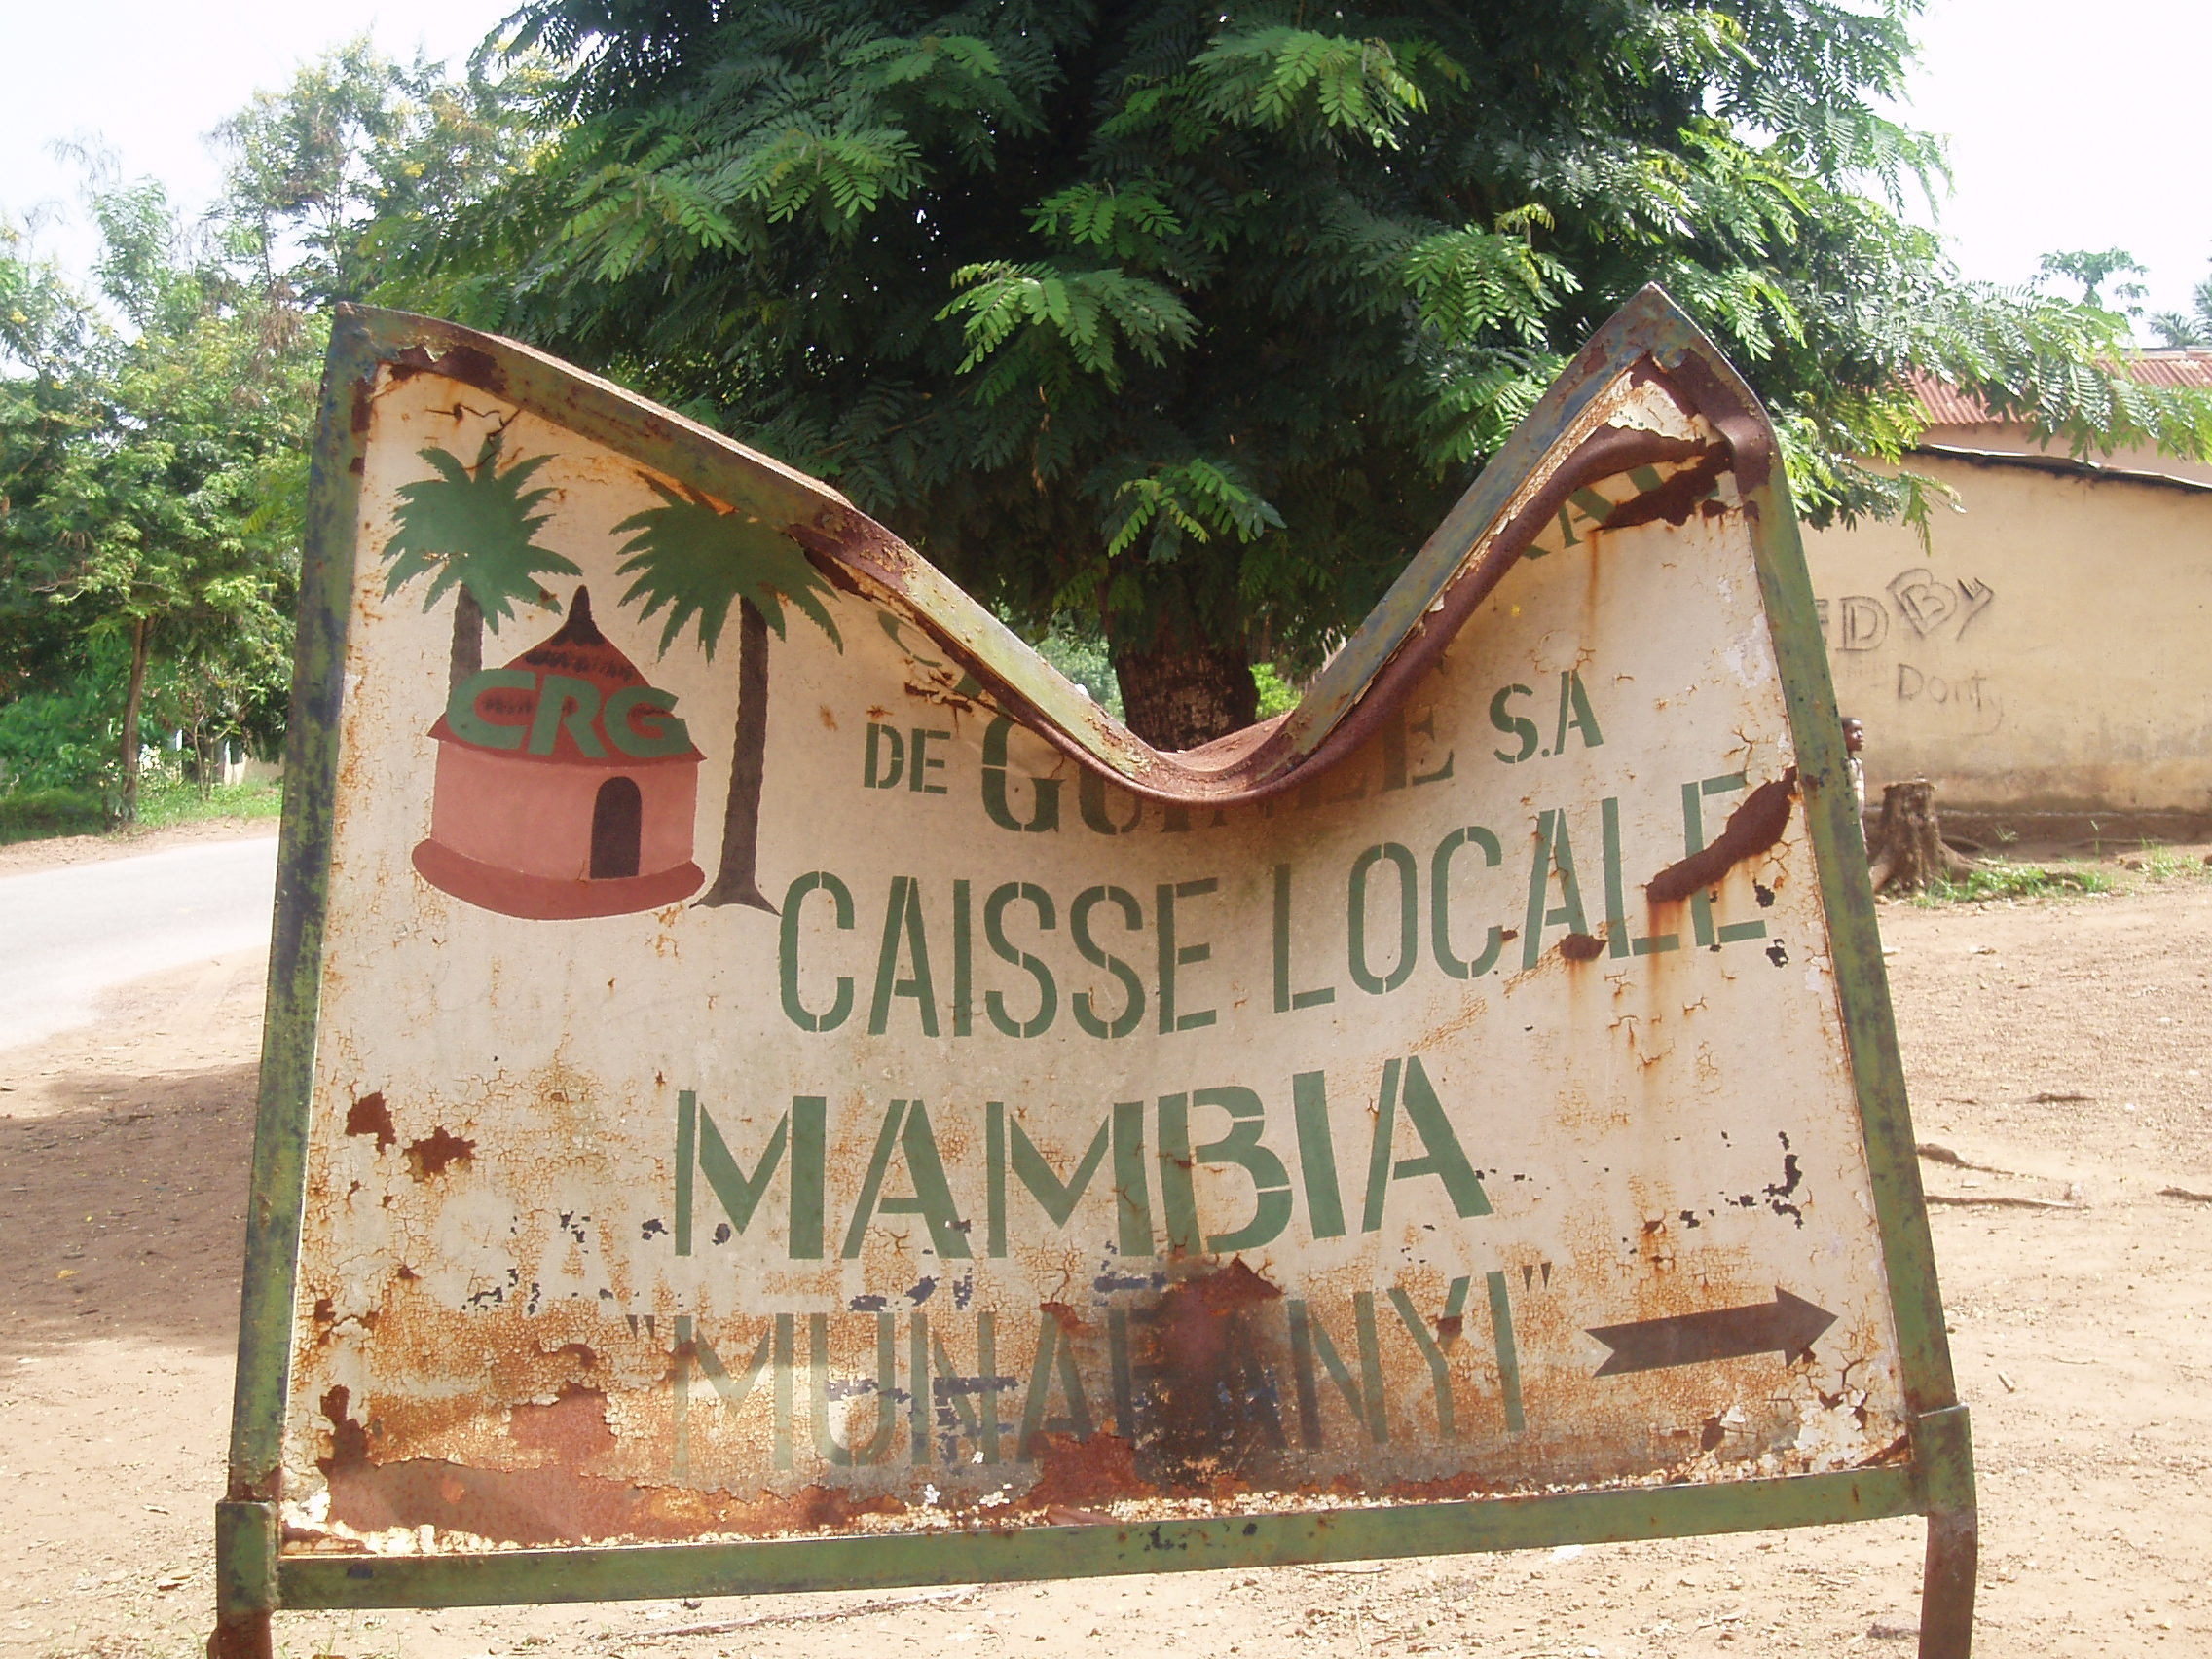 A sign at the entrnace to the village of Mambia, home to the Compagnies des Bauxites de Kindia's bauxite extraction mine.